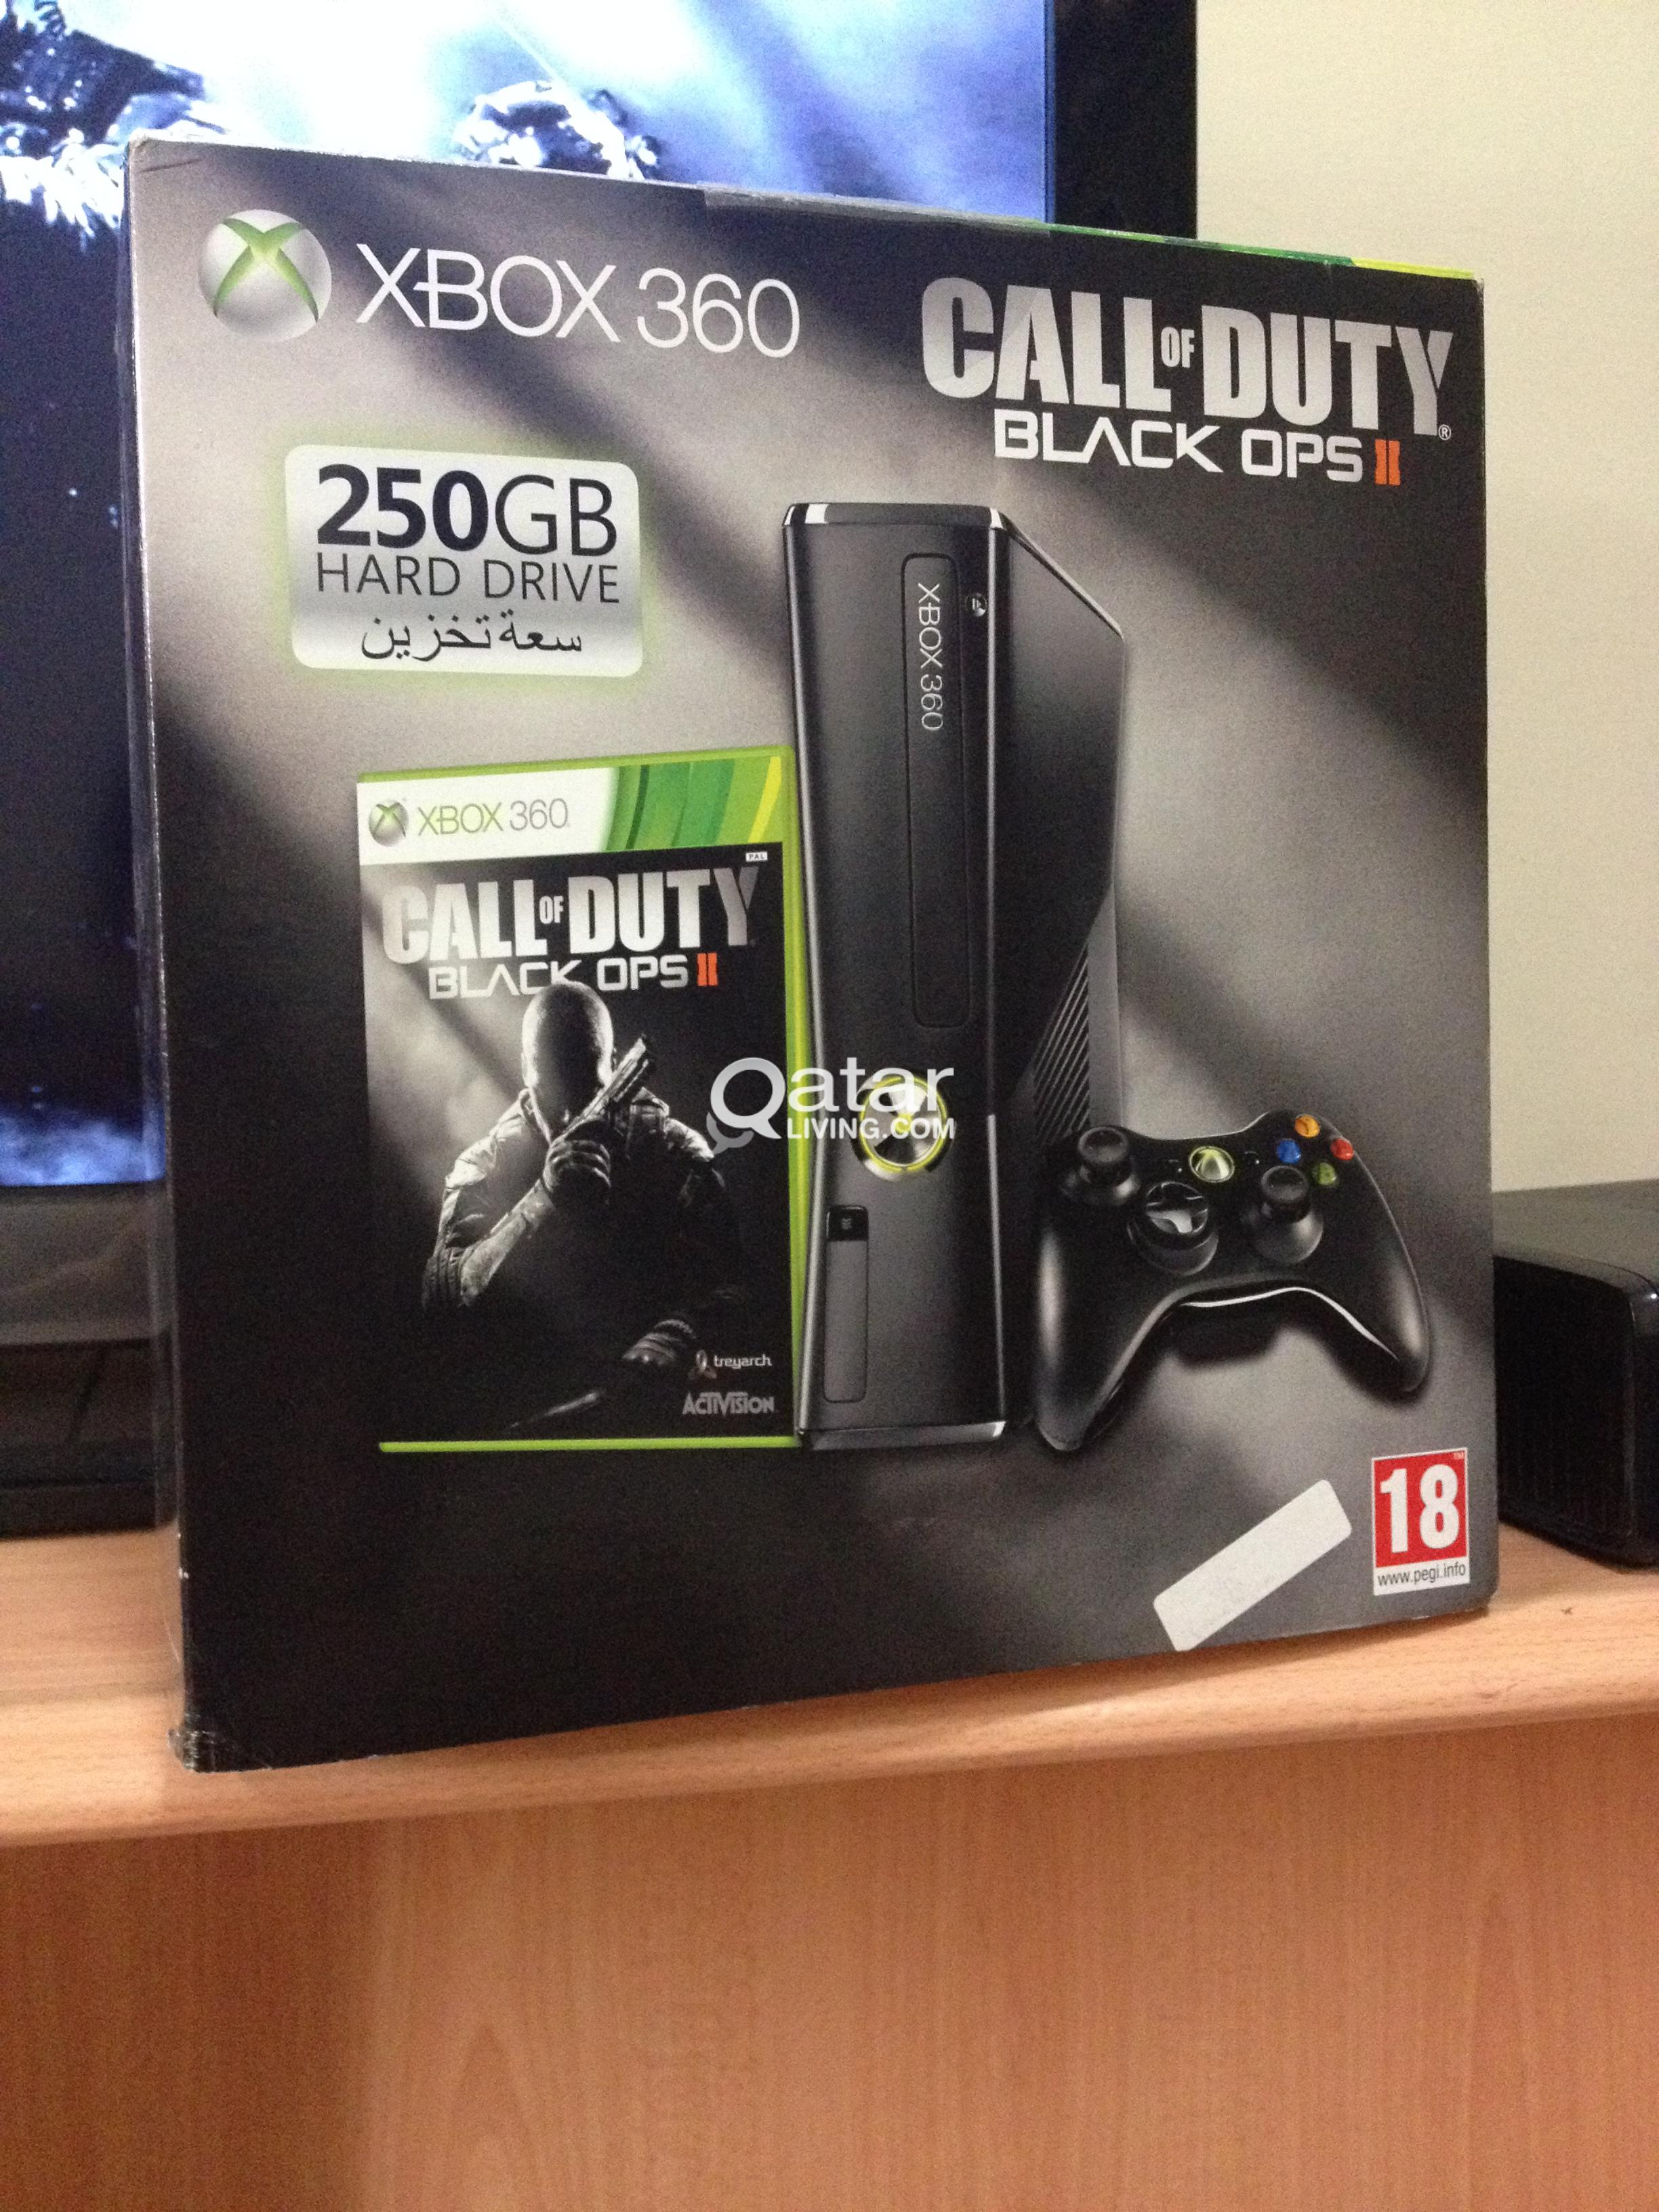 Xbox 360 with black ops 2 (3 months old) Excellent Condition